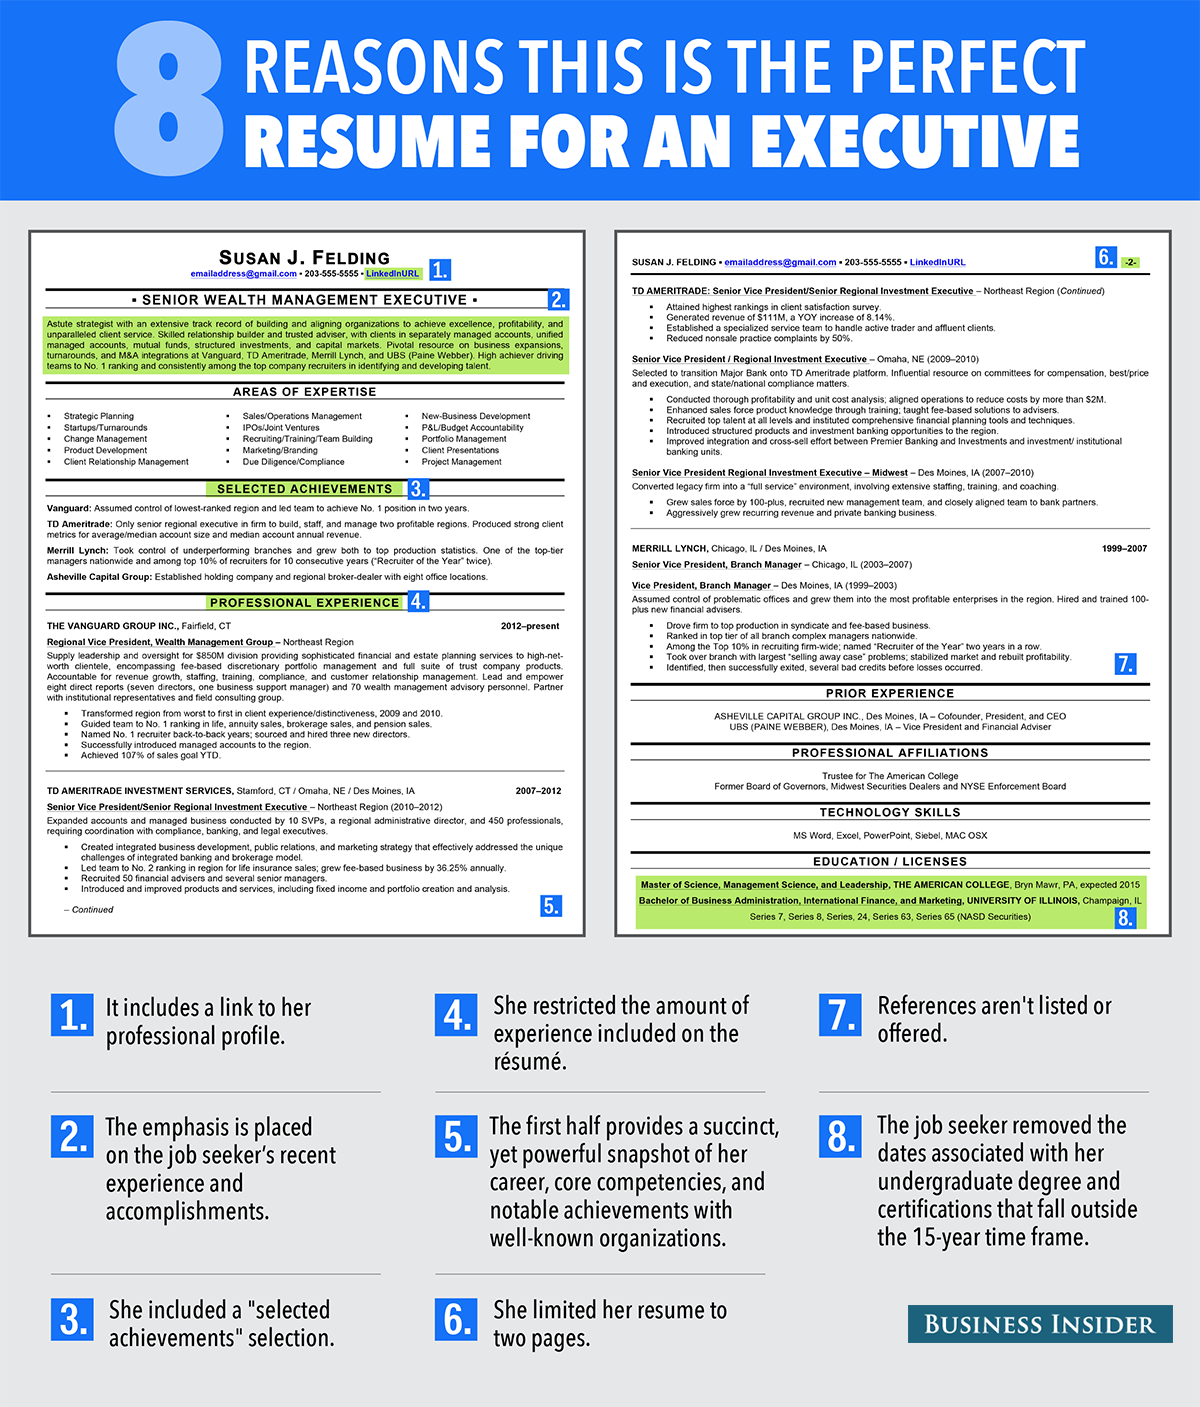 things you should always include on your r eacute sum eacute executive always include these things on your resume business insider